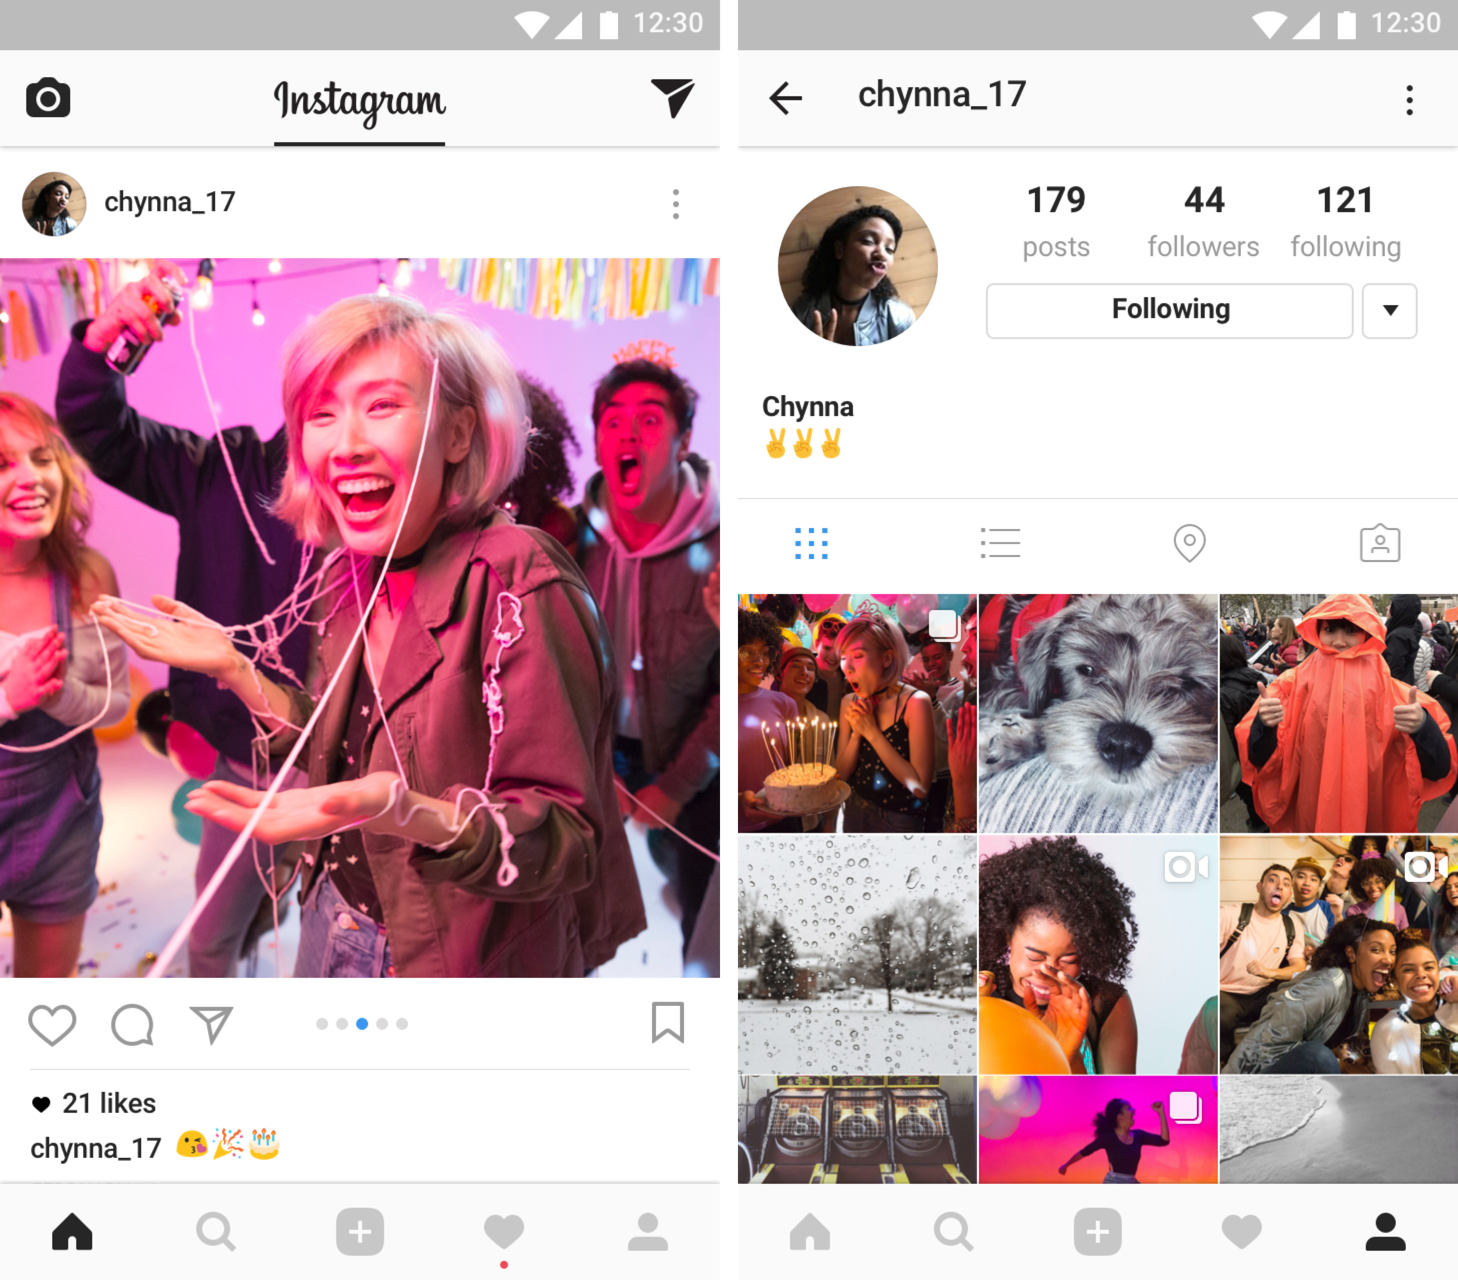 Instagram now allows up to 10 photos and videos in one post